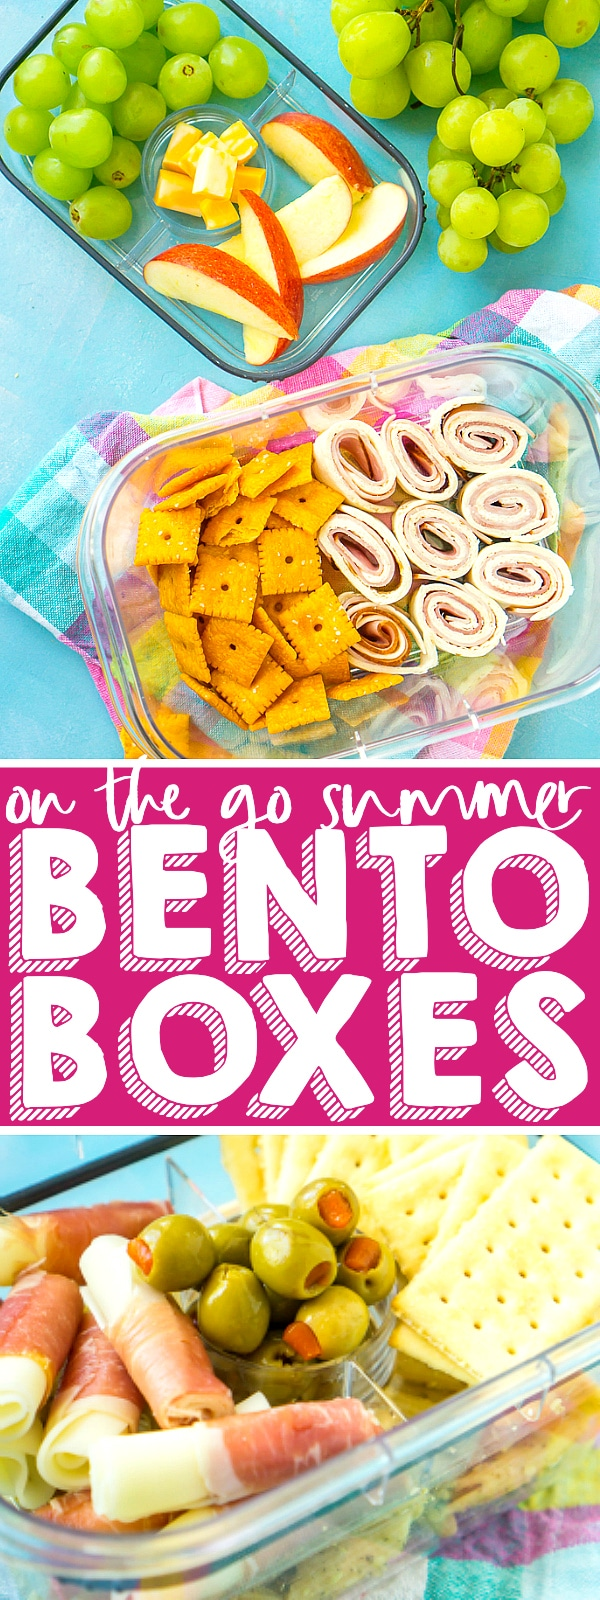 Create easy summer Bento boxes that you can take on the go for quick lunches or snacks! Helps you stay healthy and energized for all the summer fun planned, especially if you are chasing after kids at the park! | THE LOVE NERDS #bentoboxes #kidlunches #kidsnacks #packedlunch